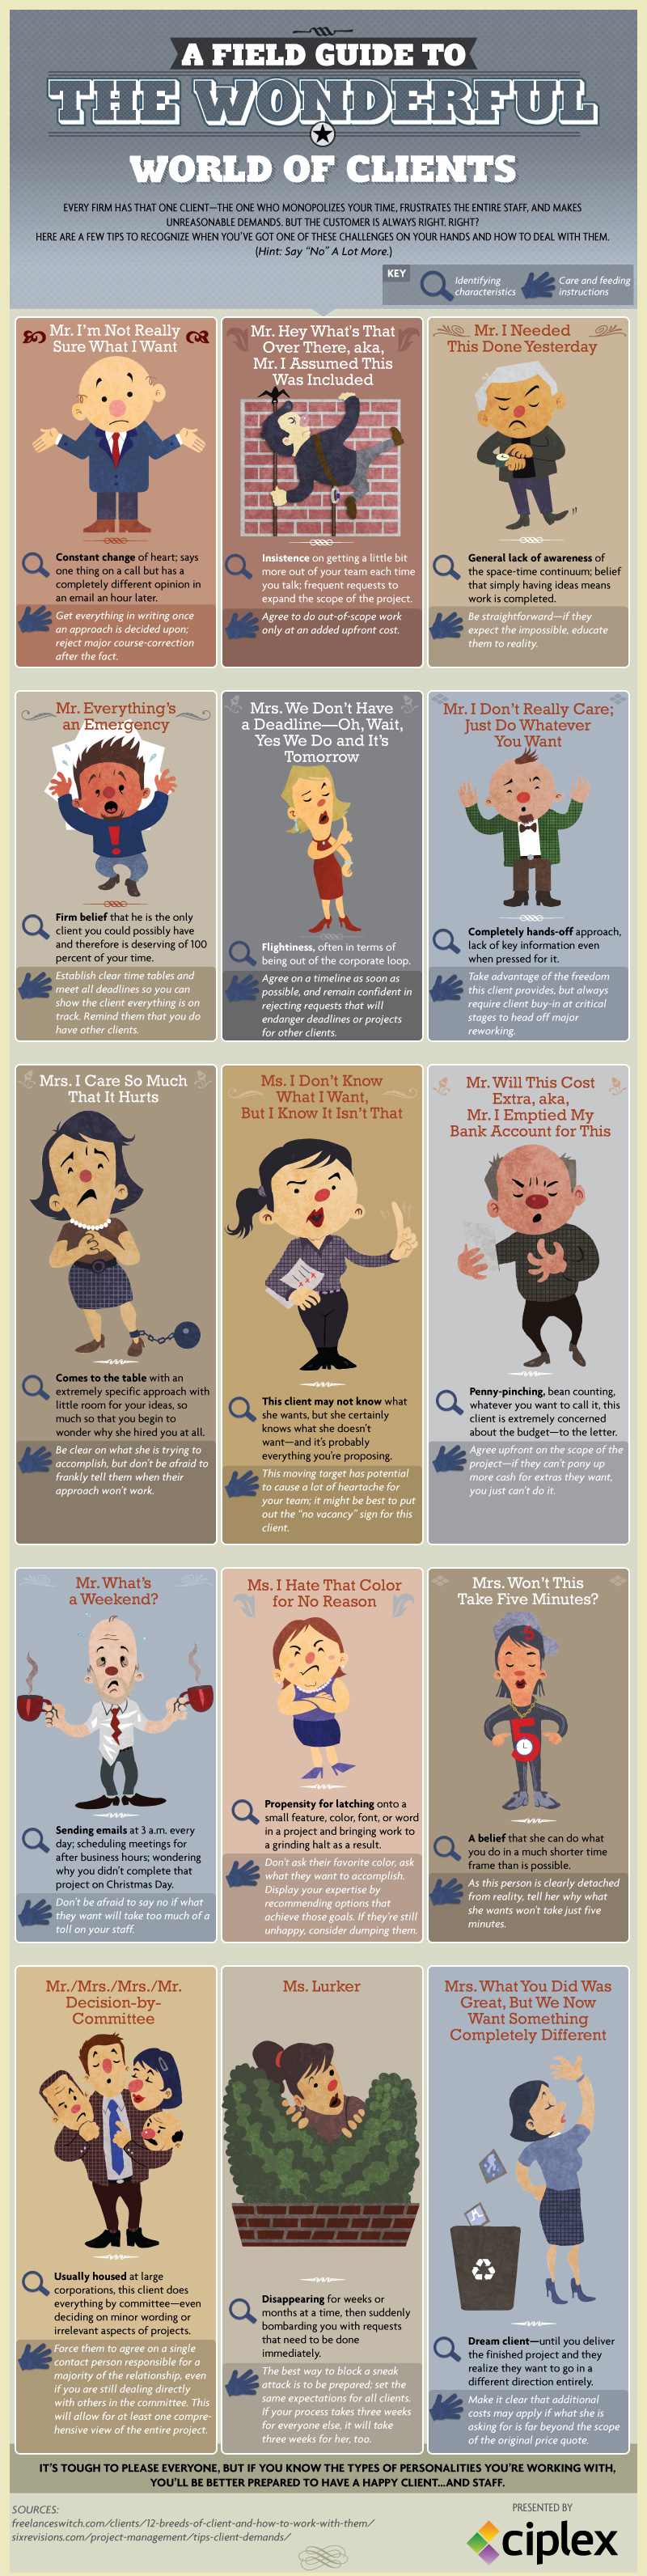 15 Types of Clients and How to Handle Them Properly [Infographic]